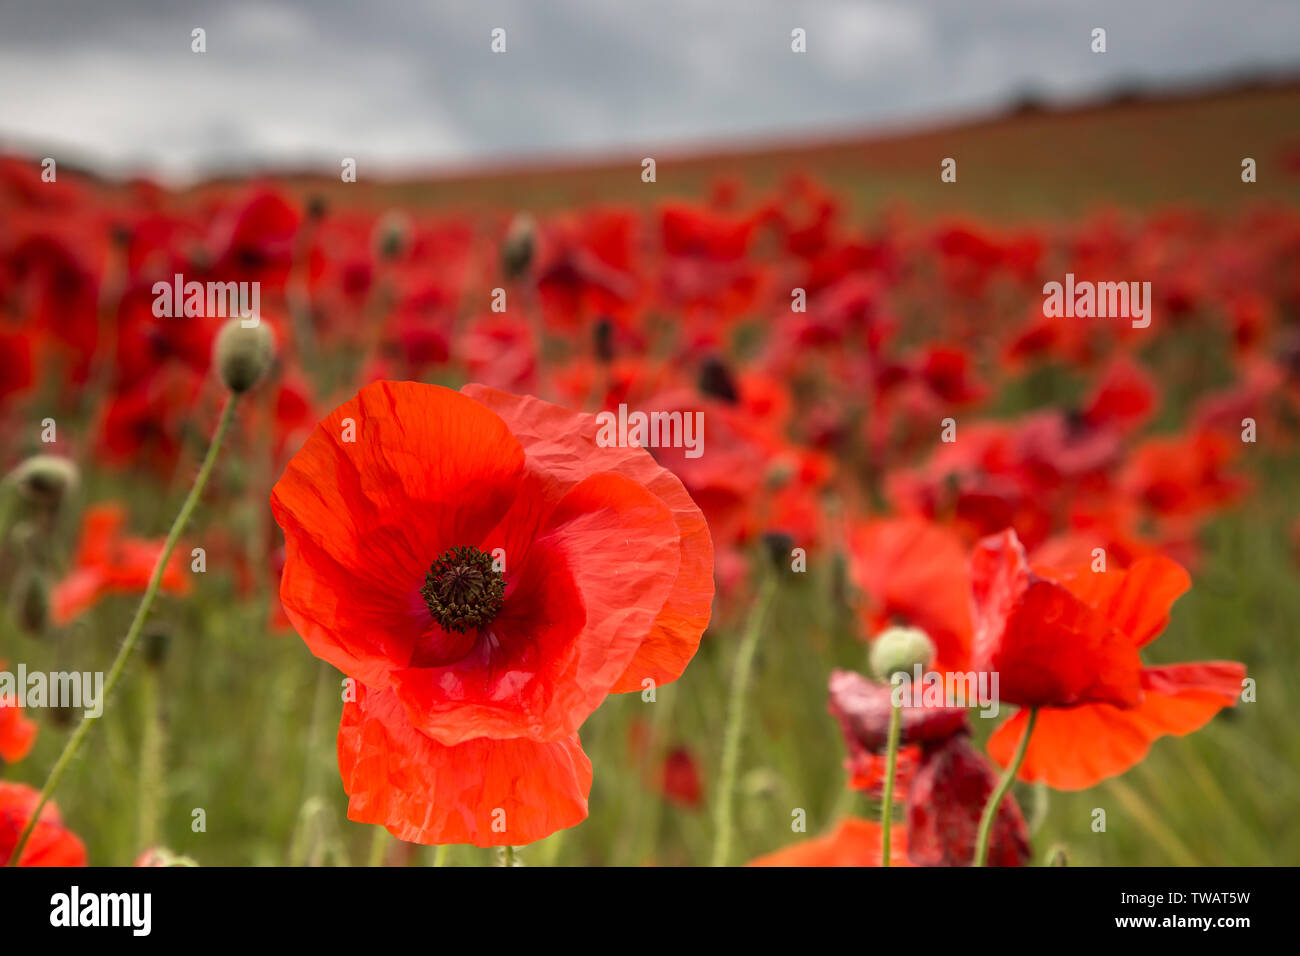 Detailed close up of a natural, wild, red poppy flower (Papaver rhoeas) fully open in foreground; UK poppy field landscape behind, without people. - Stock Image